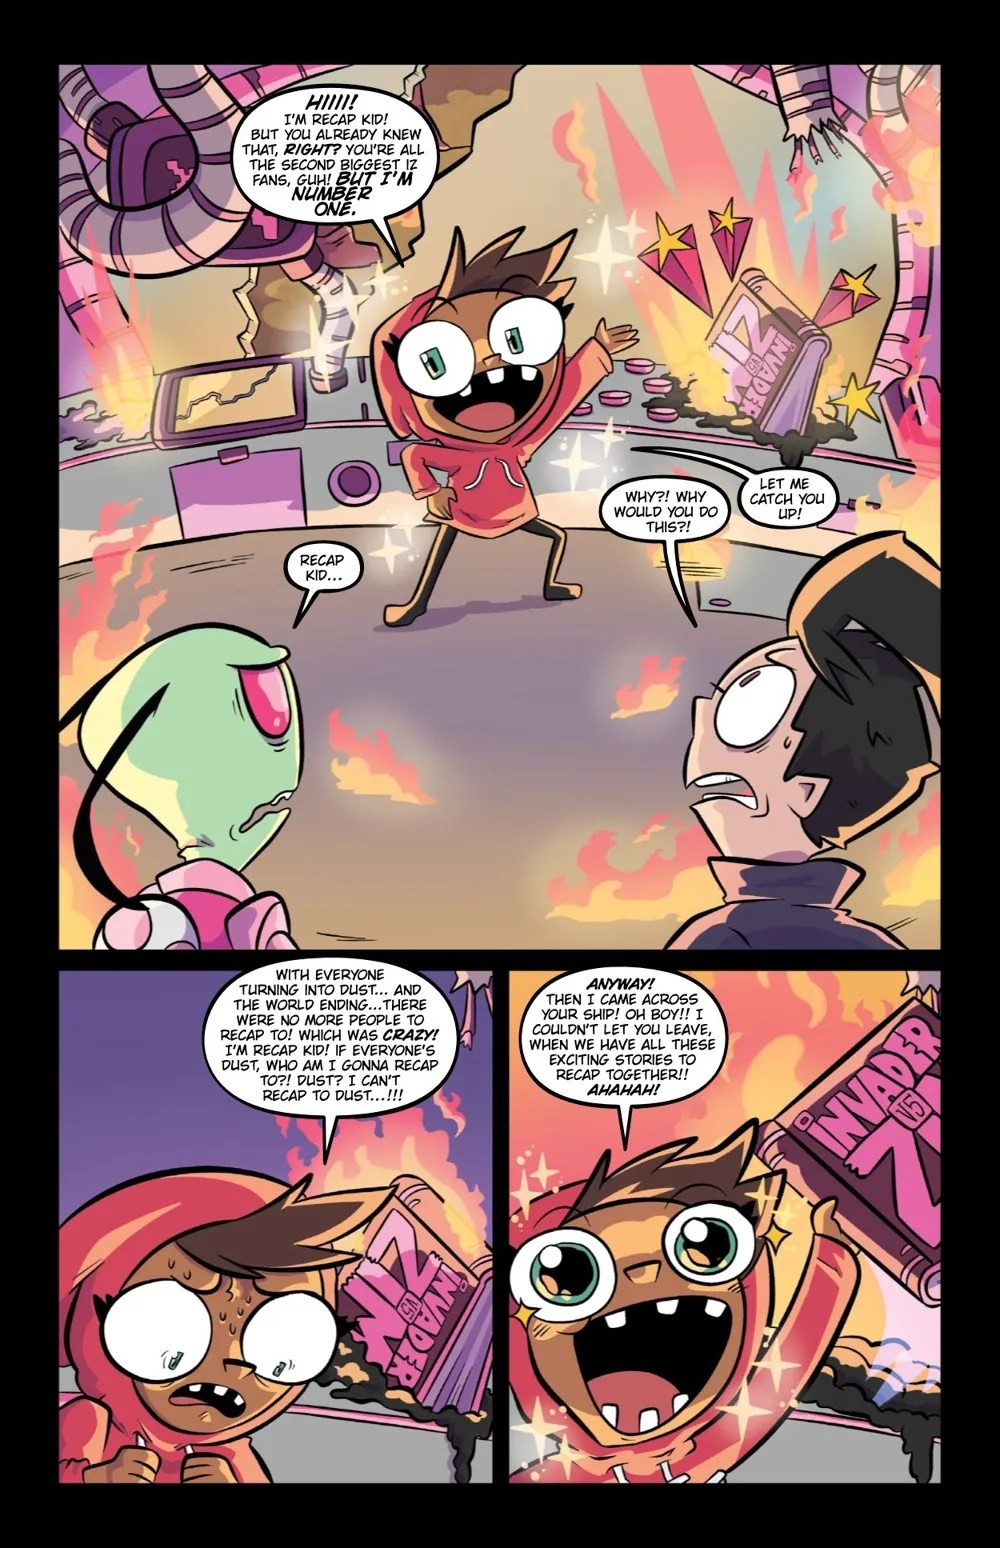 INVADERZIM5-HC-REFERENCE-010 ComicList Previews: INVADER ZIM DELUXE EDITION VOLUME 5 HC